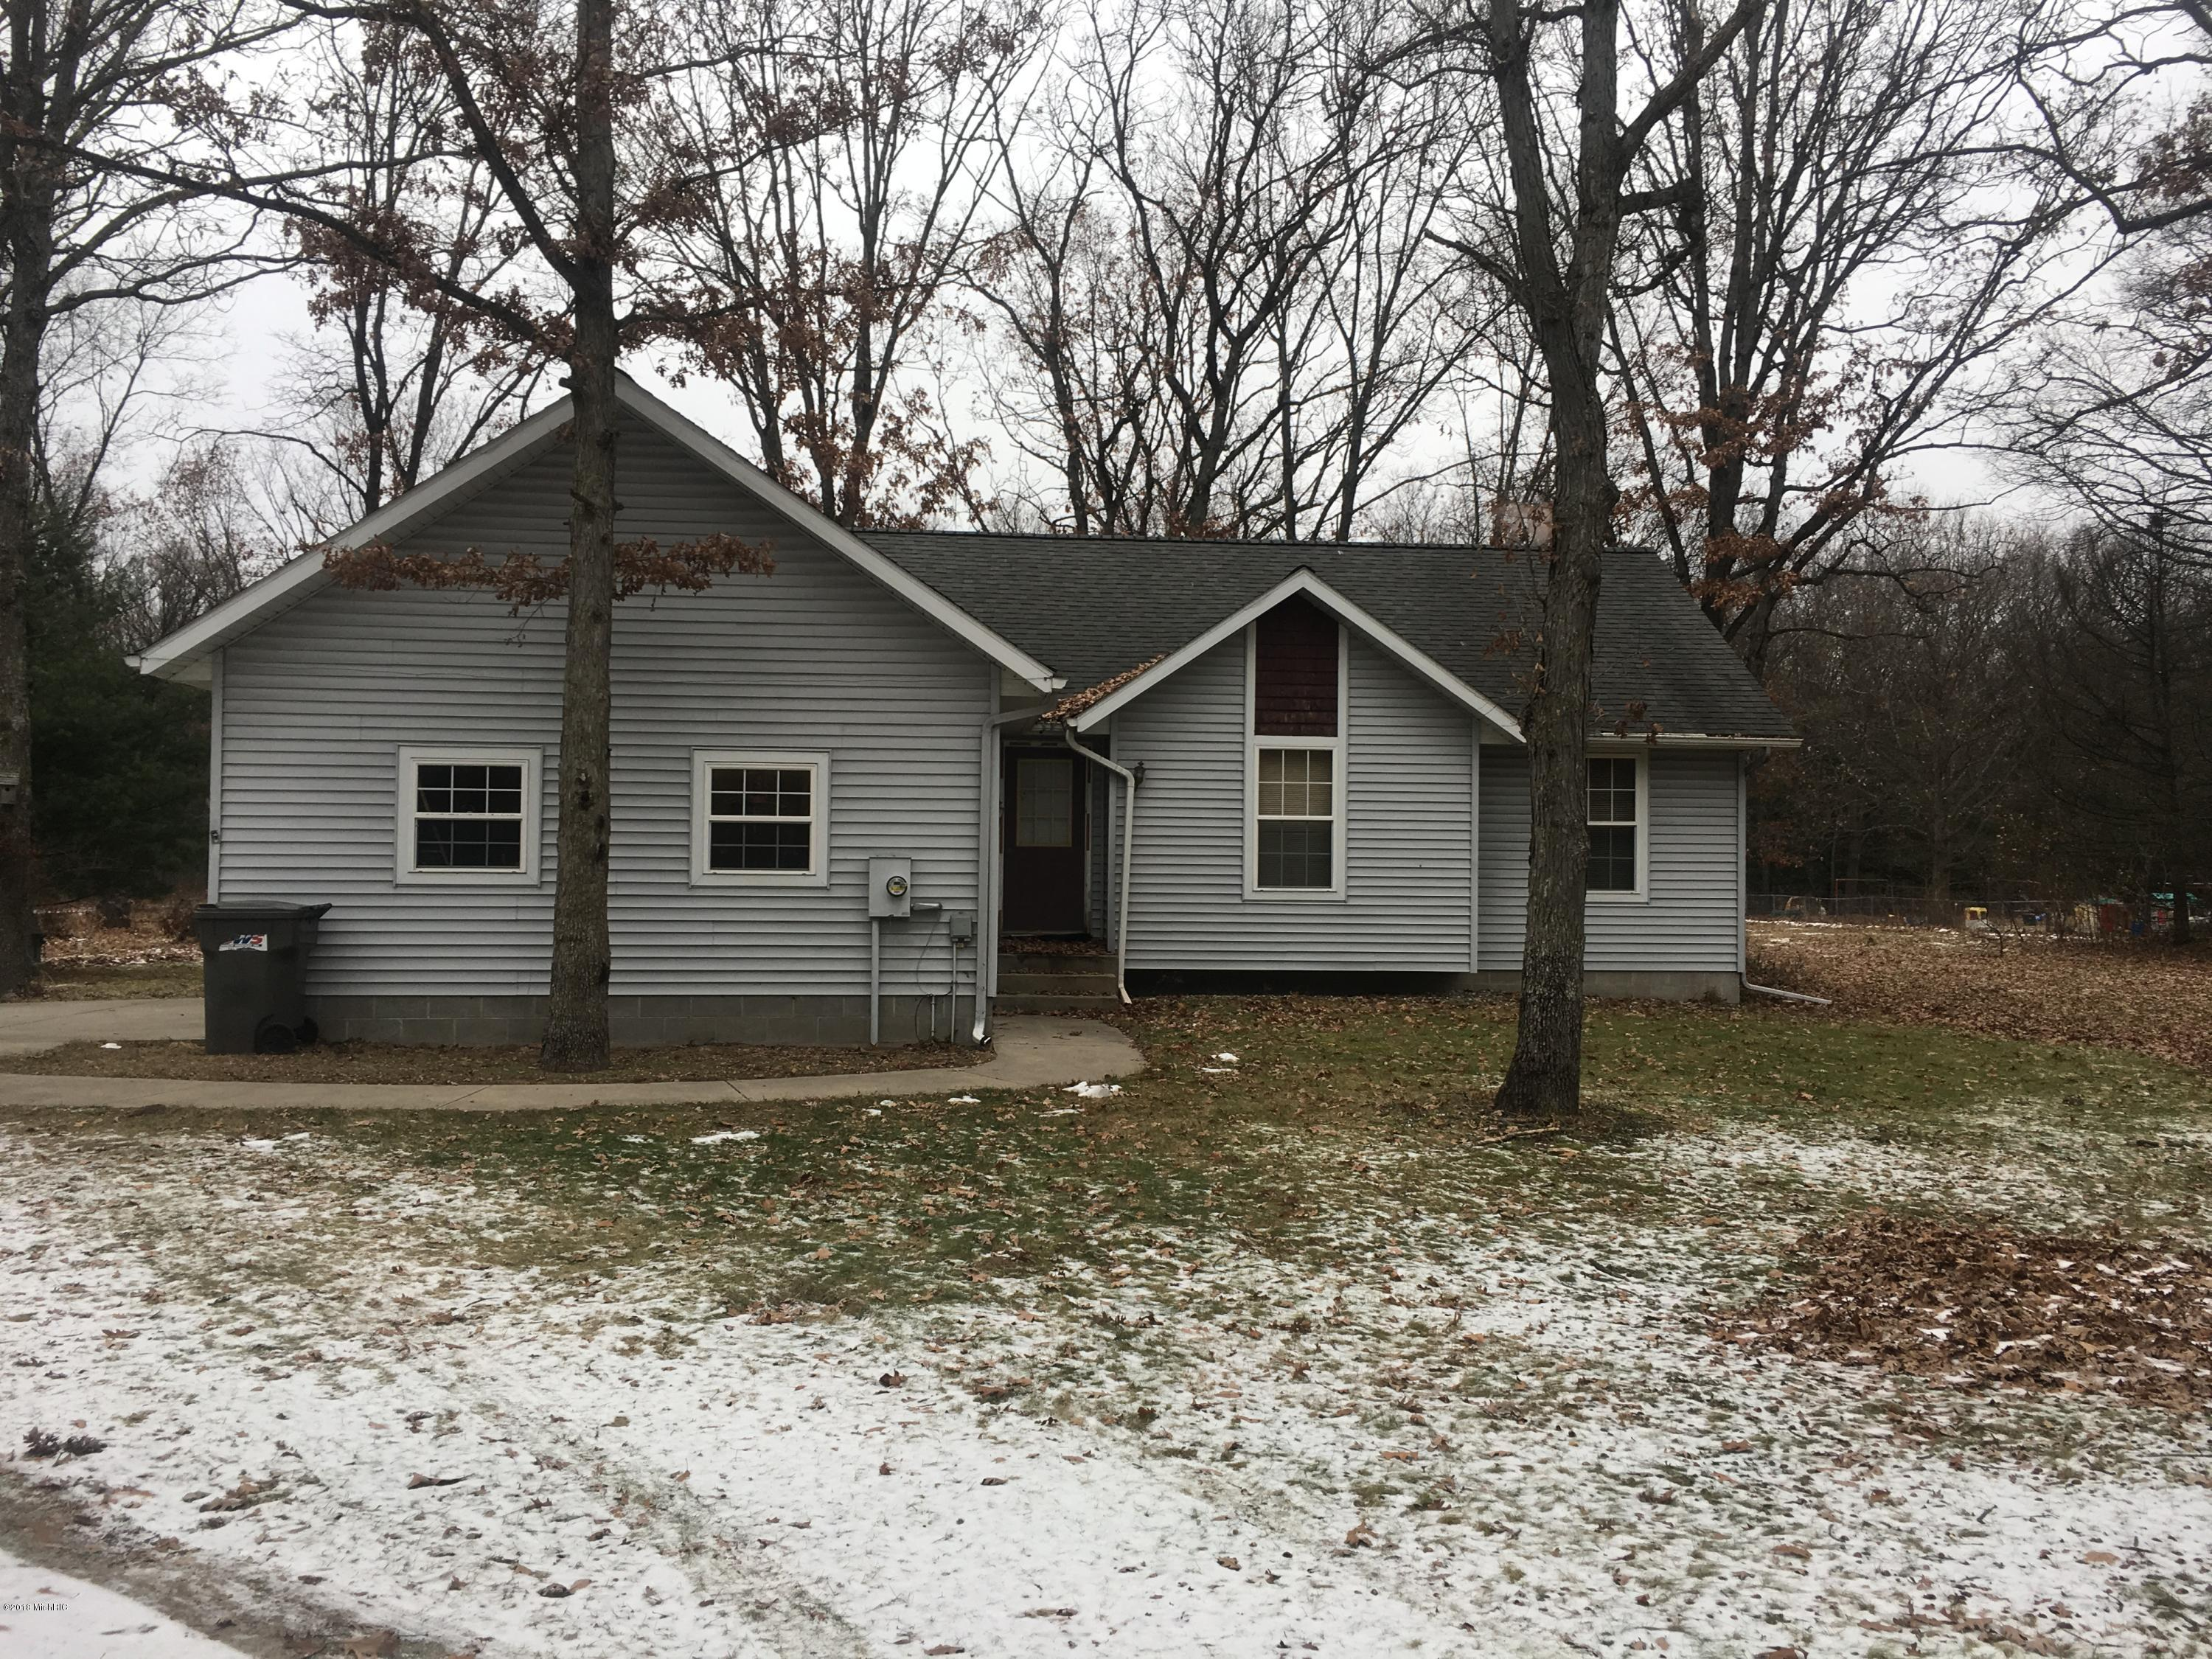 620 Jentina Court, Muskegon, Michigan 49442, 3 Bedrooms Bedrooms, ,2 BathroomsBathrooms,Residential,For Sale,Jentina,18057983